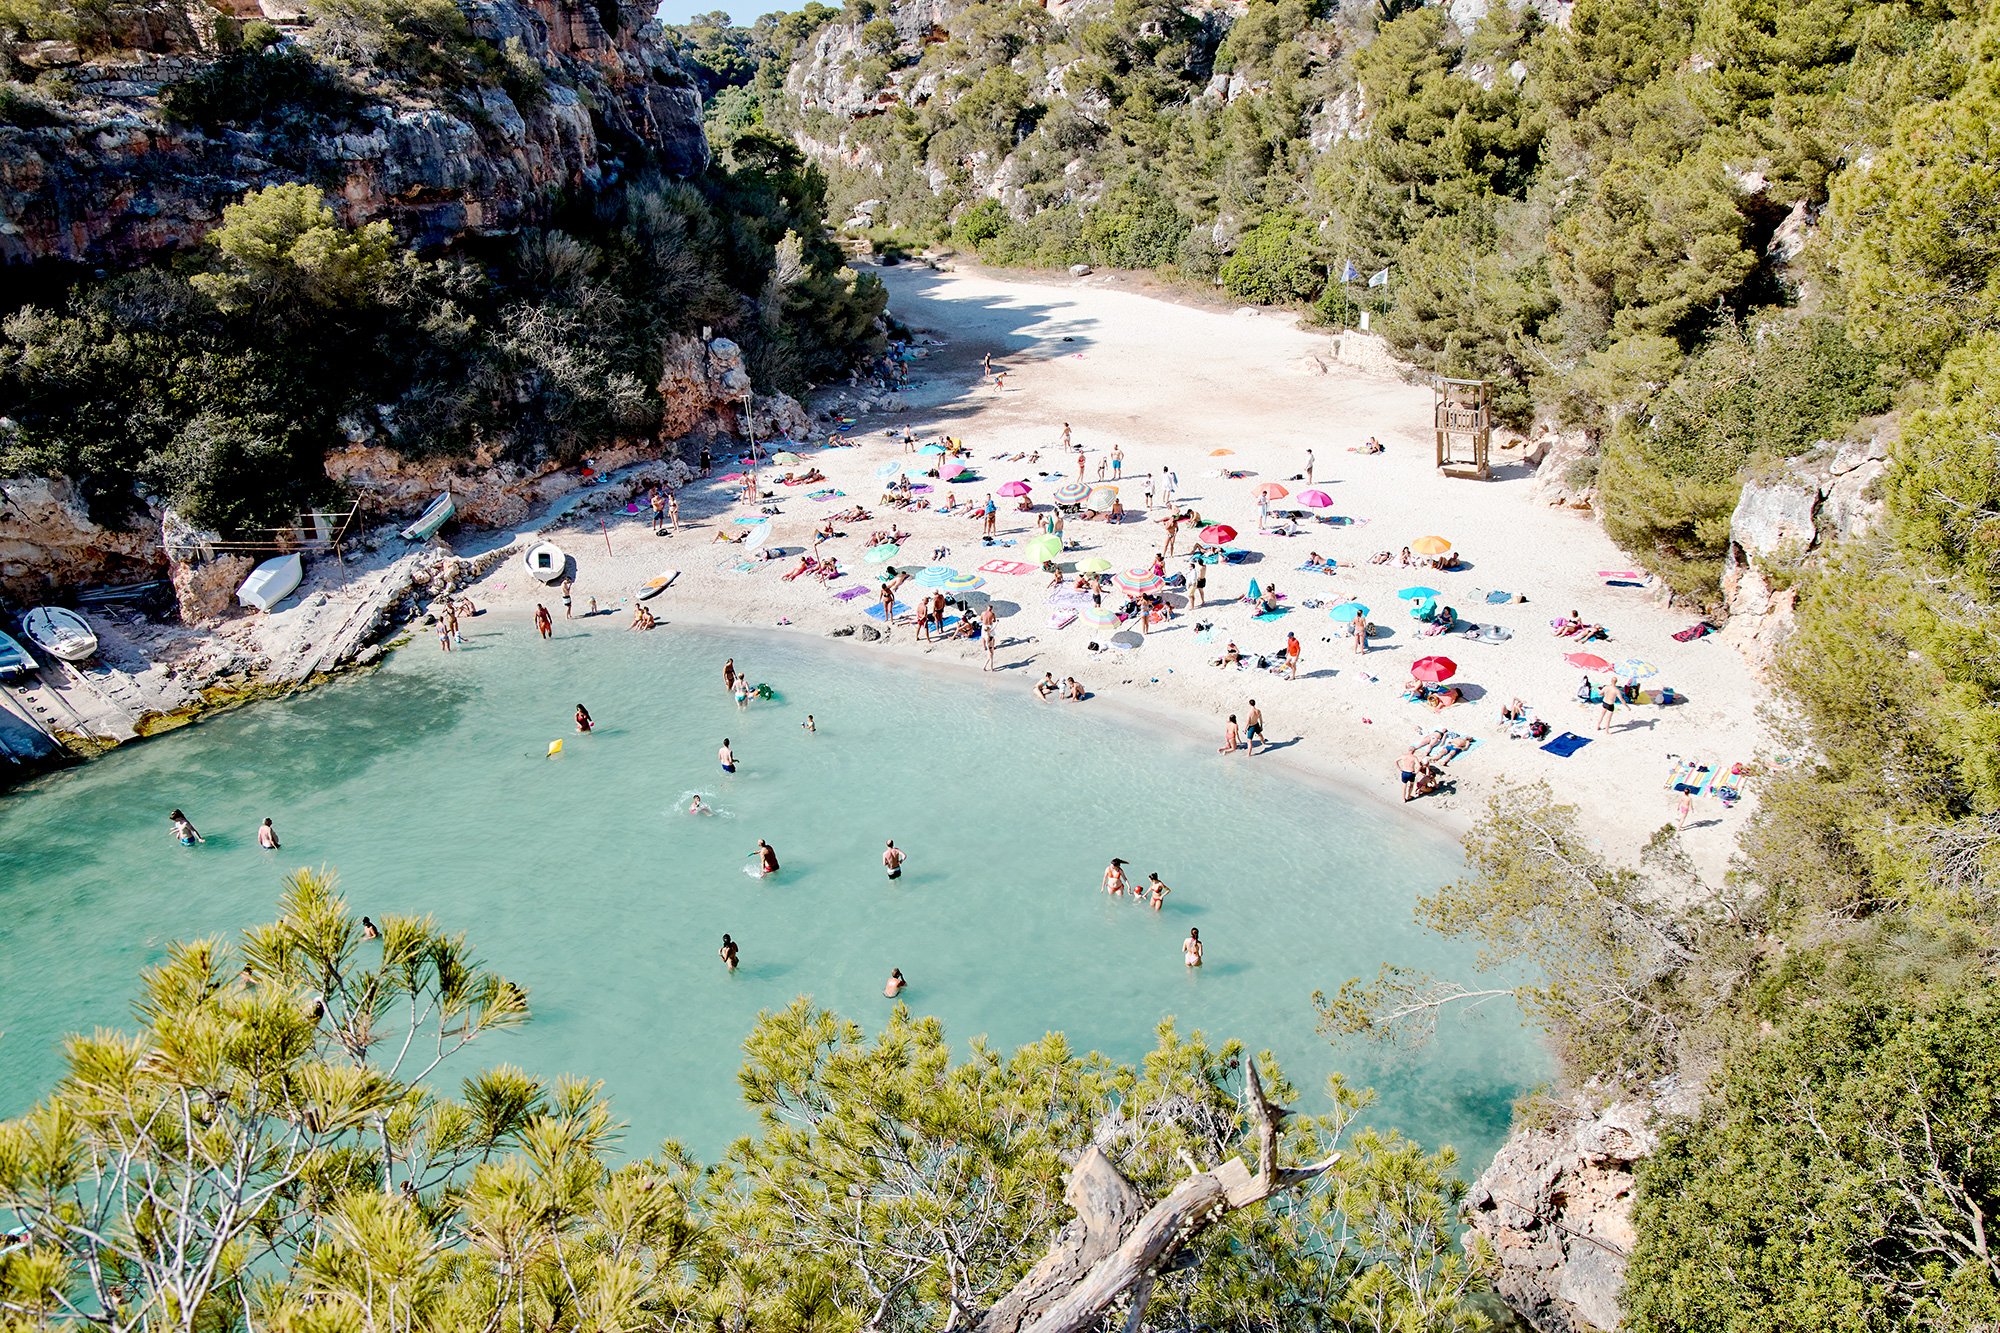 Cala Pi, Mallorca Spain similar to Tamarama